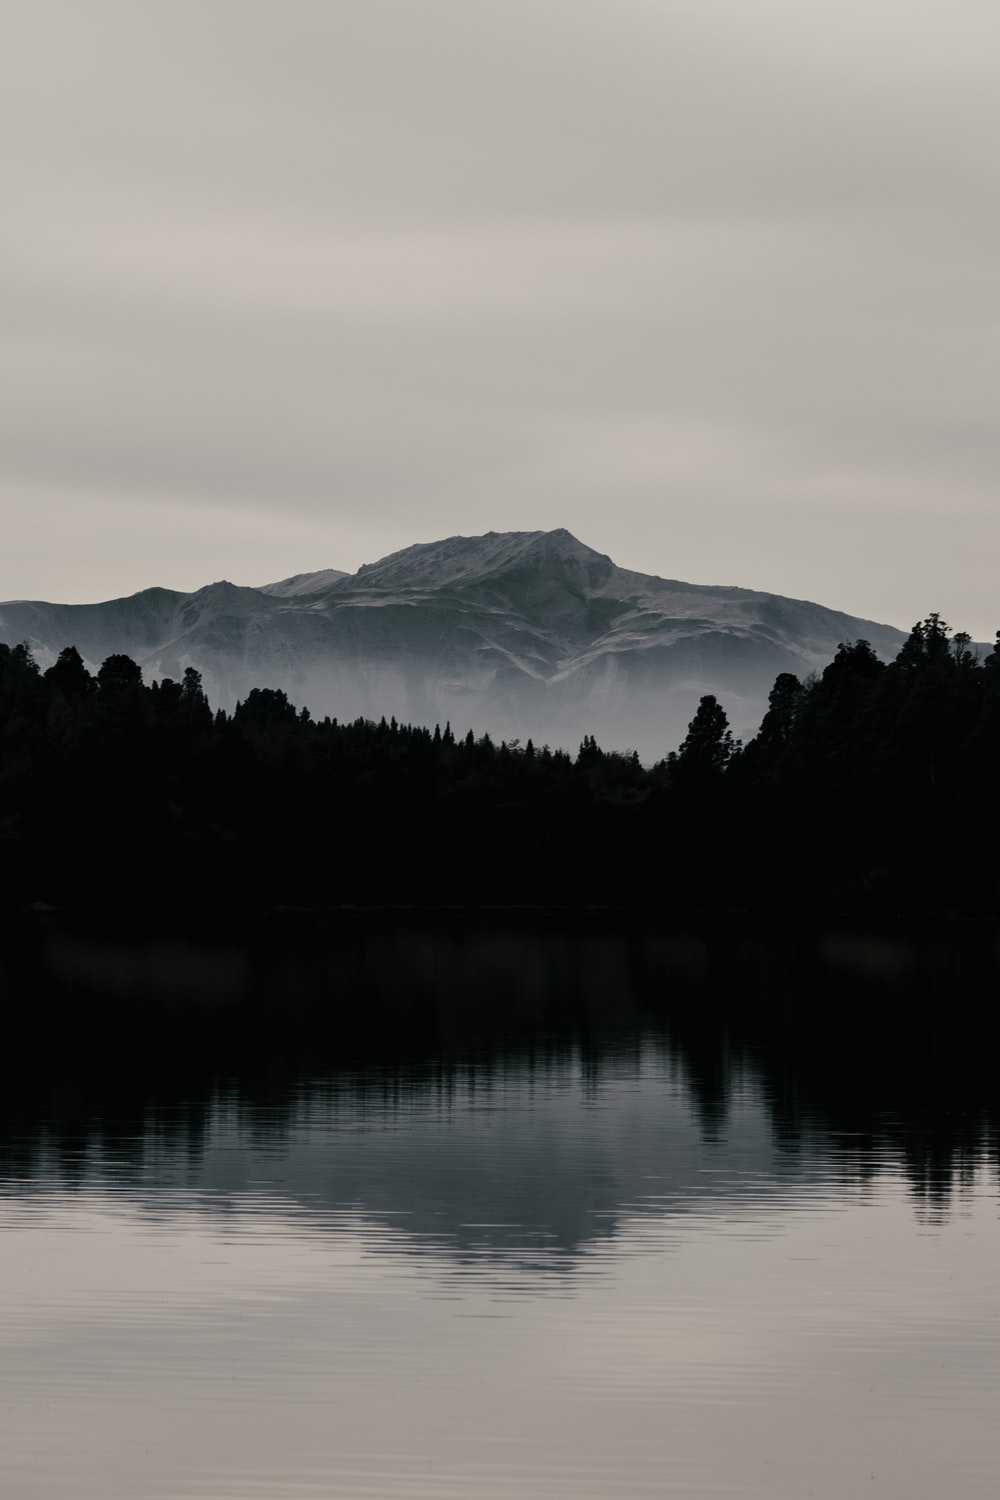 silhouette of mountain and pine trees